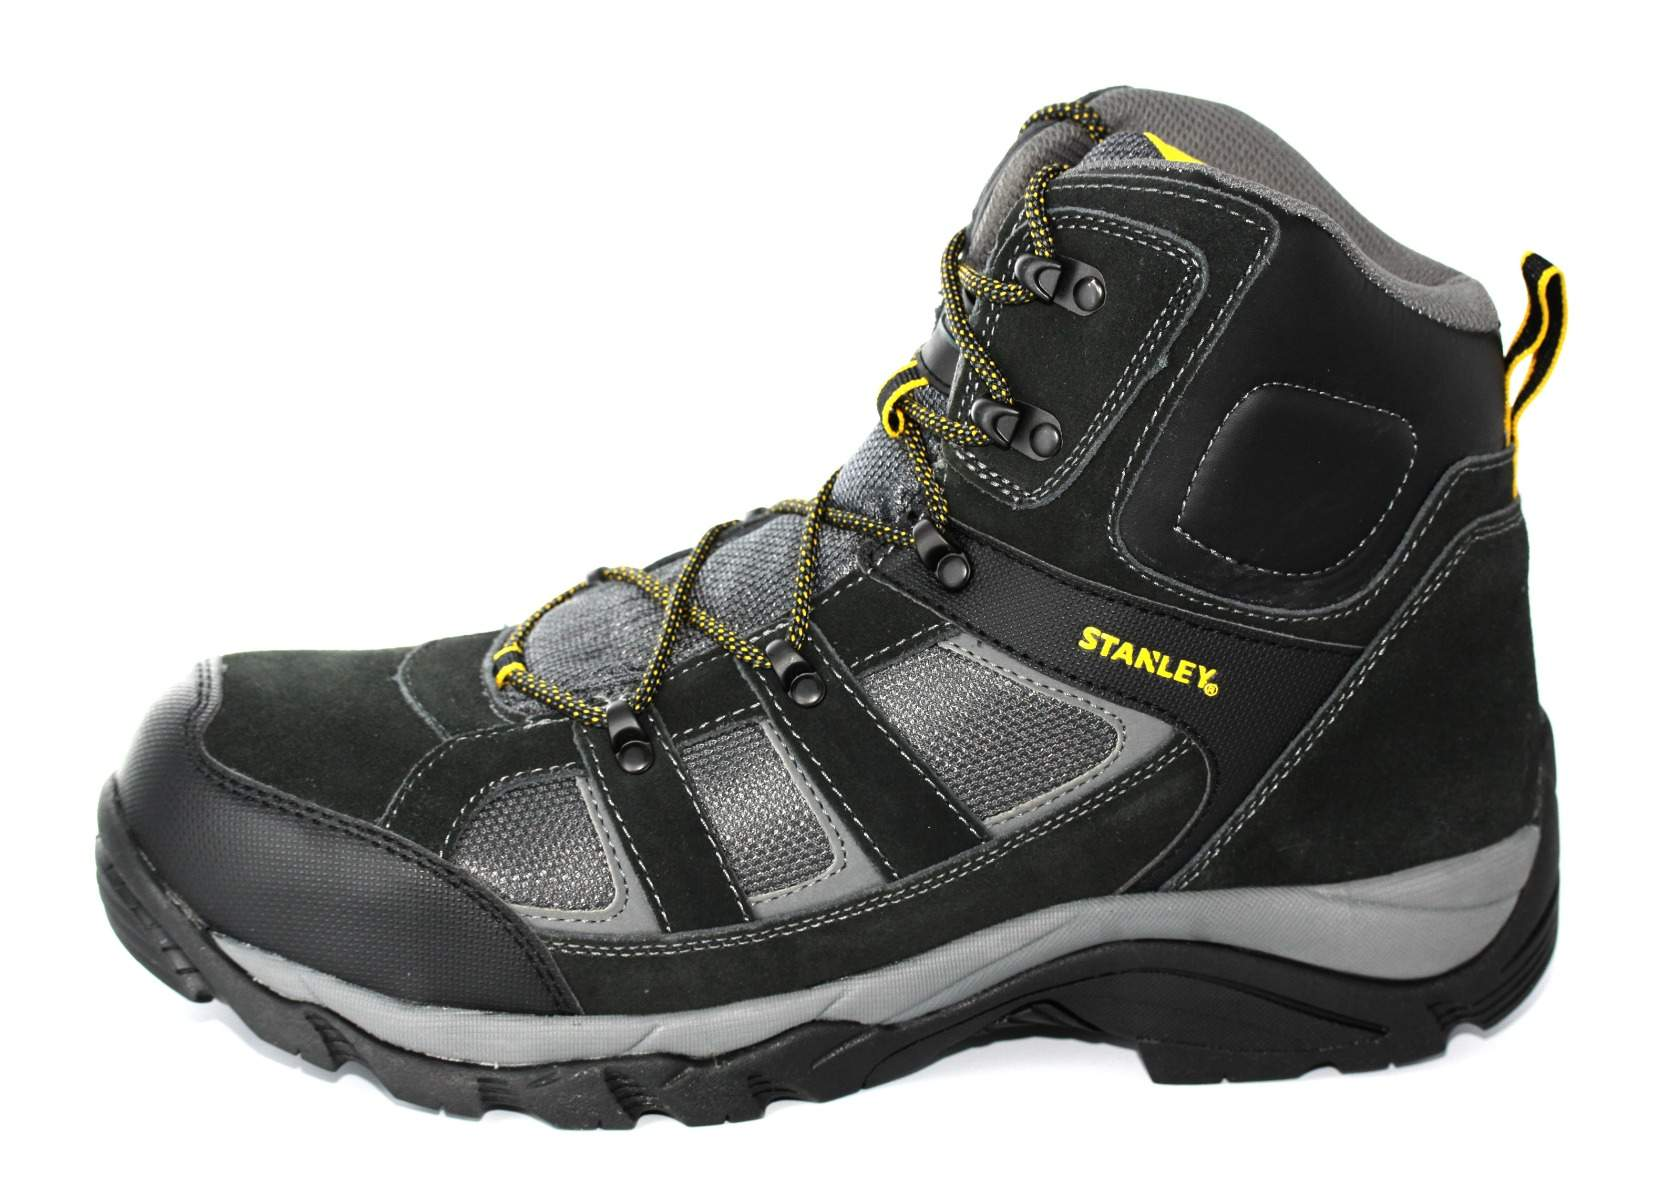 aacad6f1681 Details about Stanley Mens Black Yellow Melrose Safety Work Boots